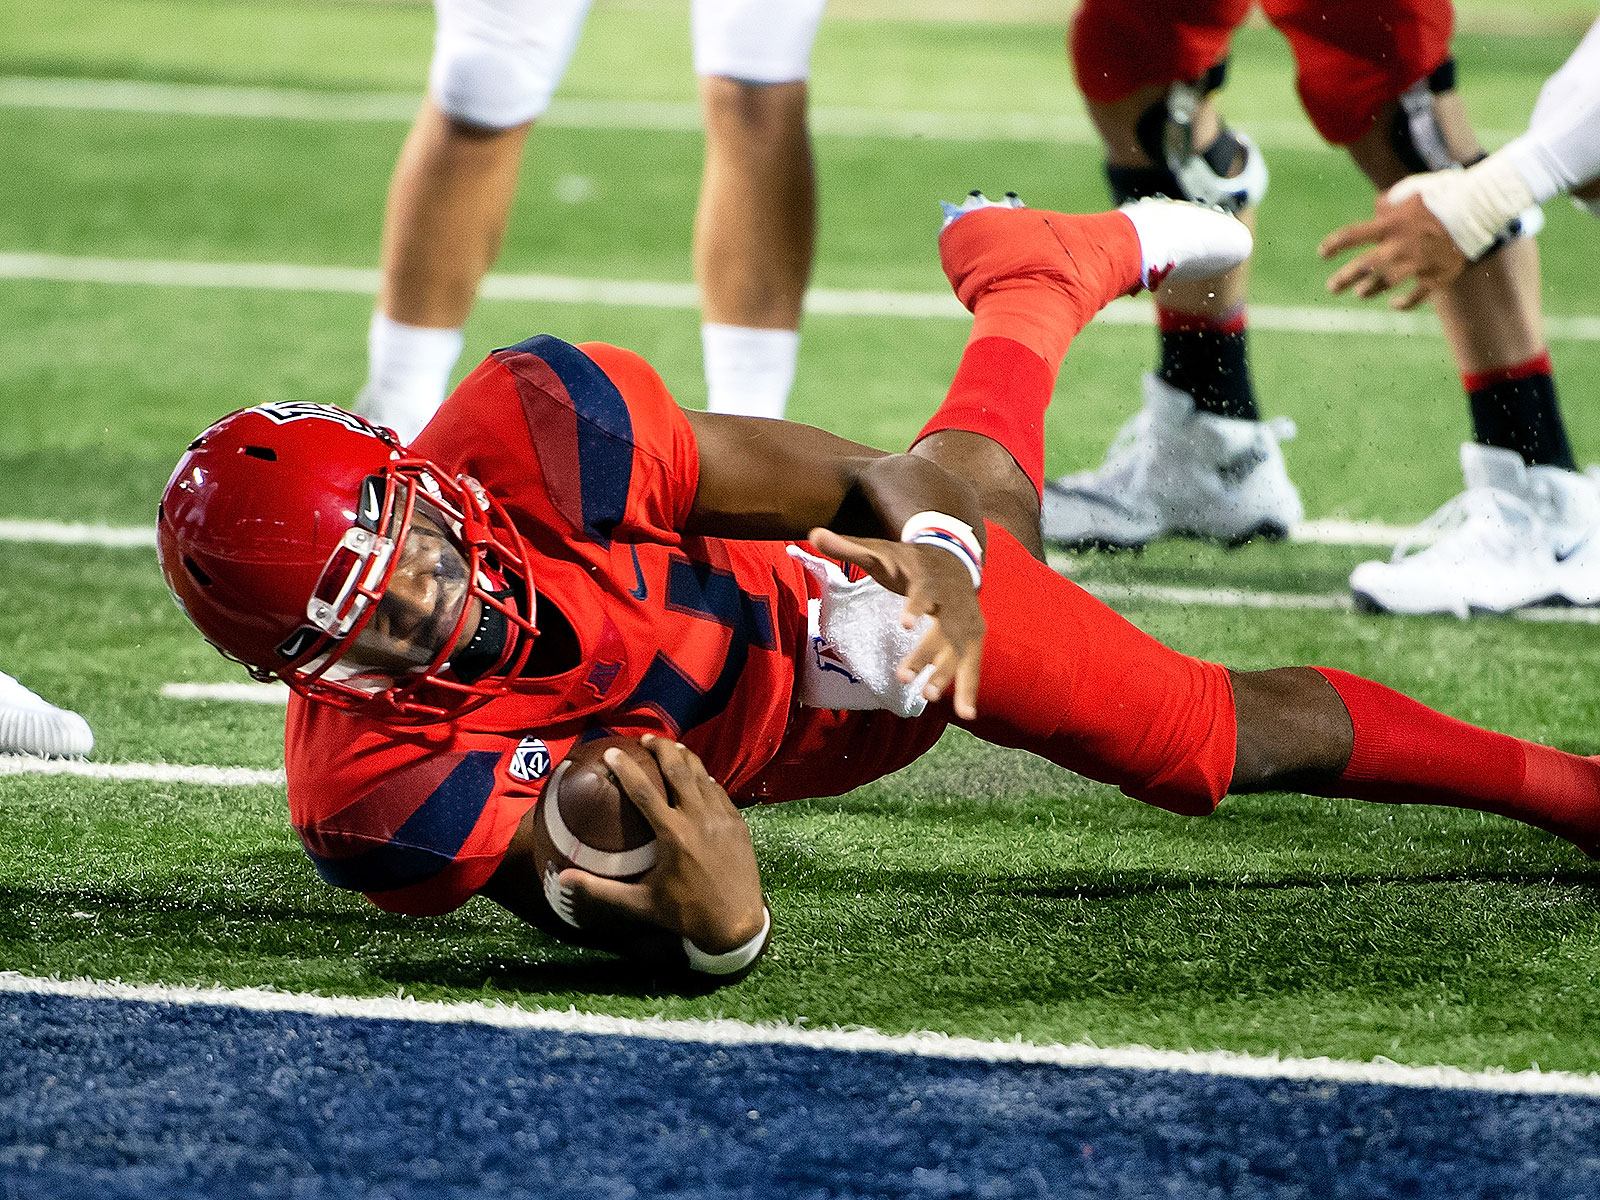 Khalil Tate Arizona Wildcats football